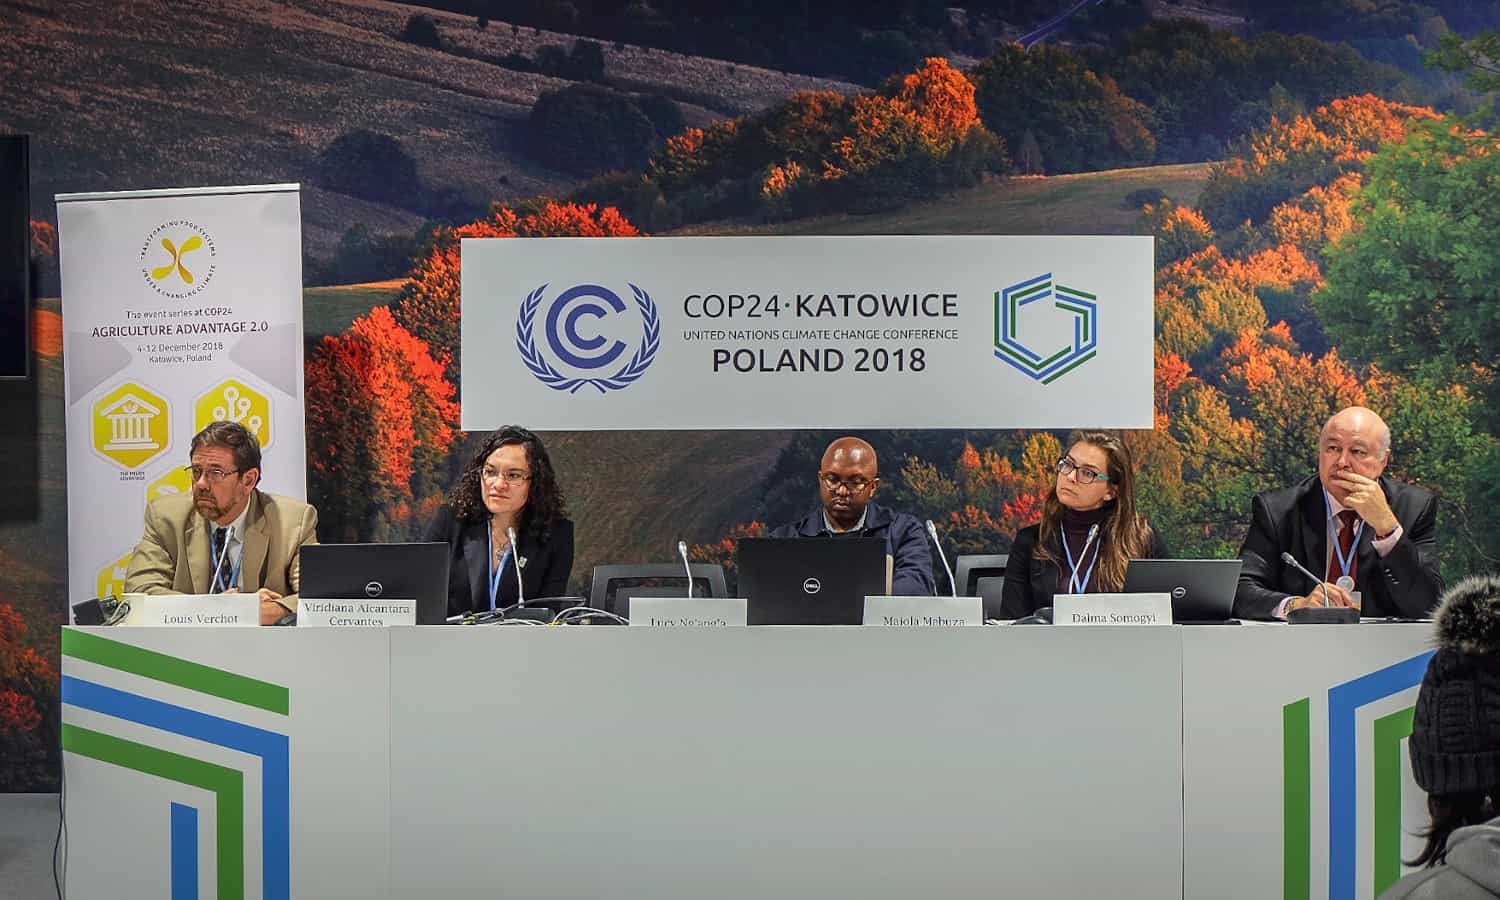 One-third of carbon emissions are absorbed by the earth's biosphere. After forests, agricultural lands and wetlands have the most potential to do this. A panel of experts convened at COP24 last week to discuss ways in which this potential can be realized.